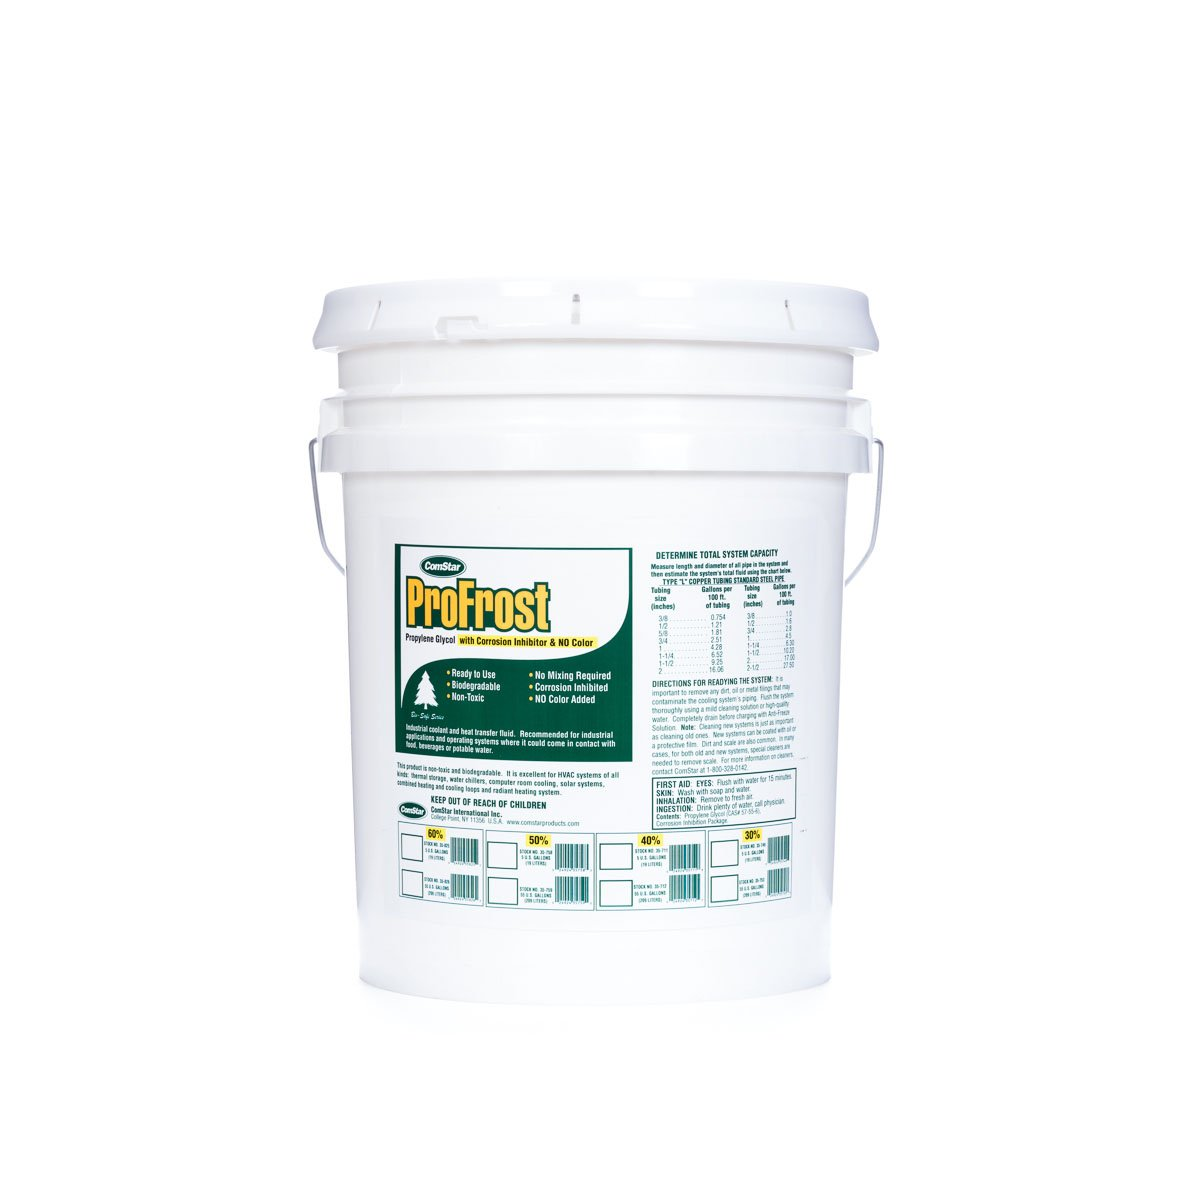 ComStar 35-749 ProFrost Chiller/Anti Freeze/Heat Transfer Fluid with Corrosion Inhibitor and NO Color, 30% Solution Ratio, 5 gal Pail, Clear